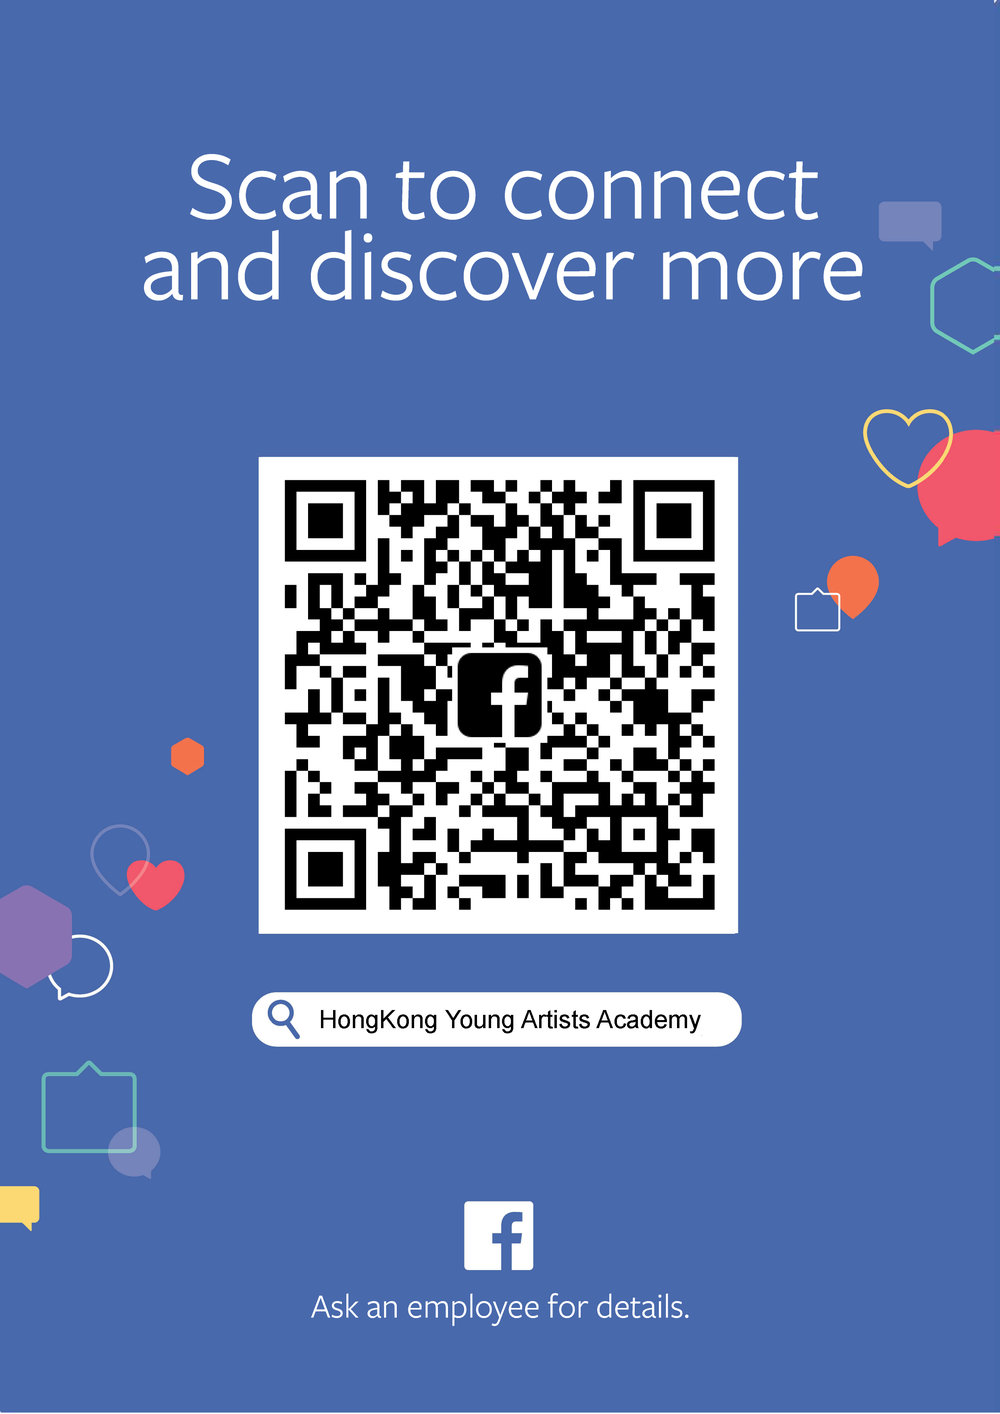 QR Code forFacebook Page created! - You can scan this QR code for entering to our Facebook page.Please like and follow us! You will always be updated on our news and events in details!Can't scan the QR code?Click here: https://www.facebook.com/hongkongyaa